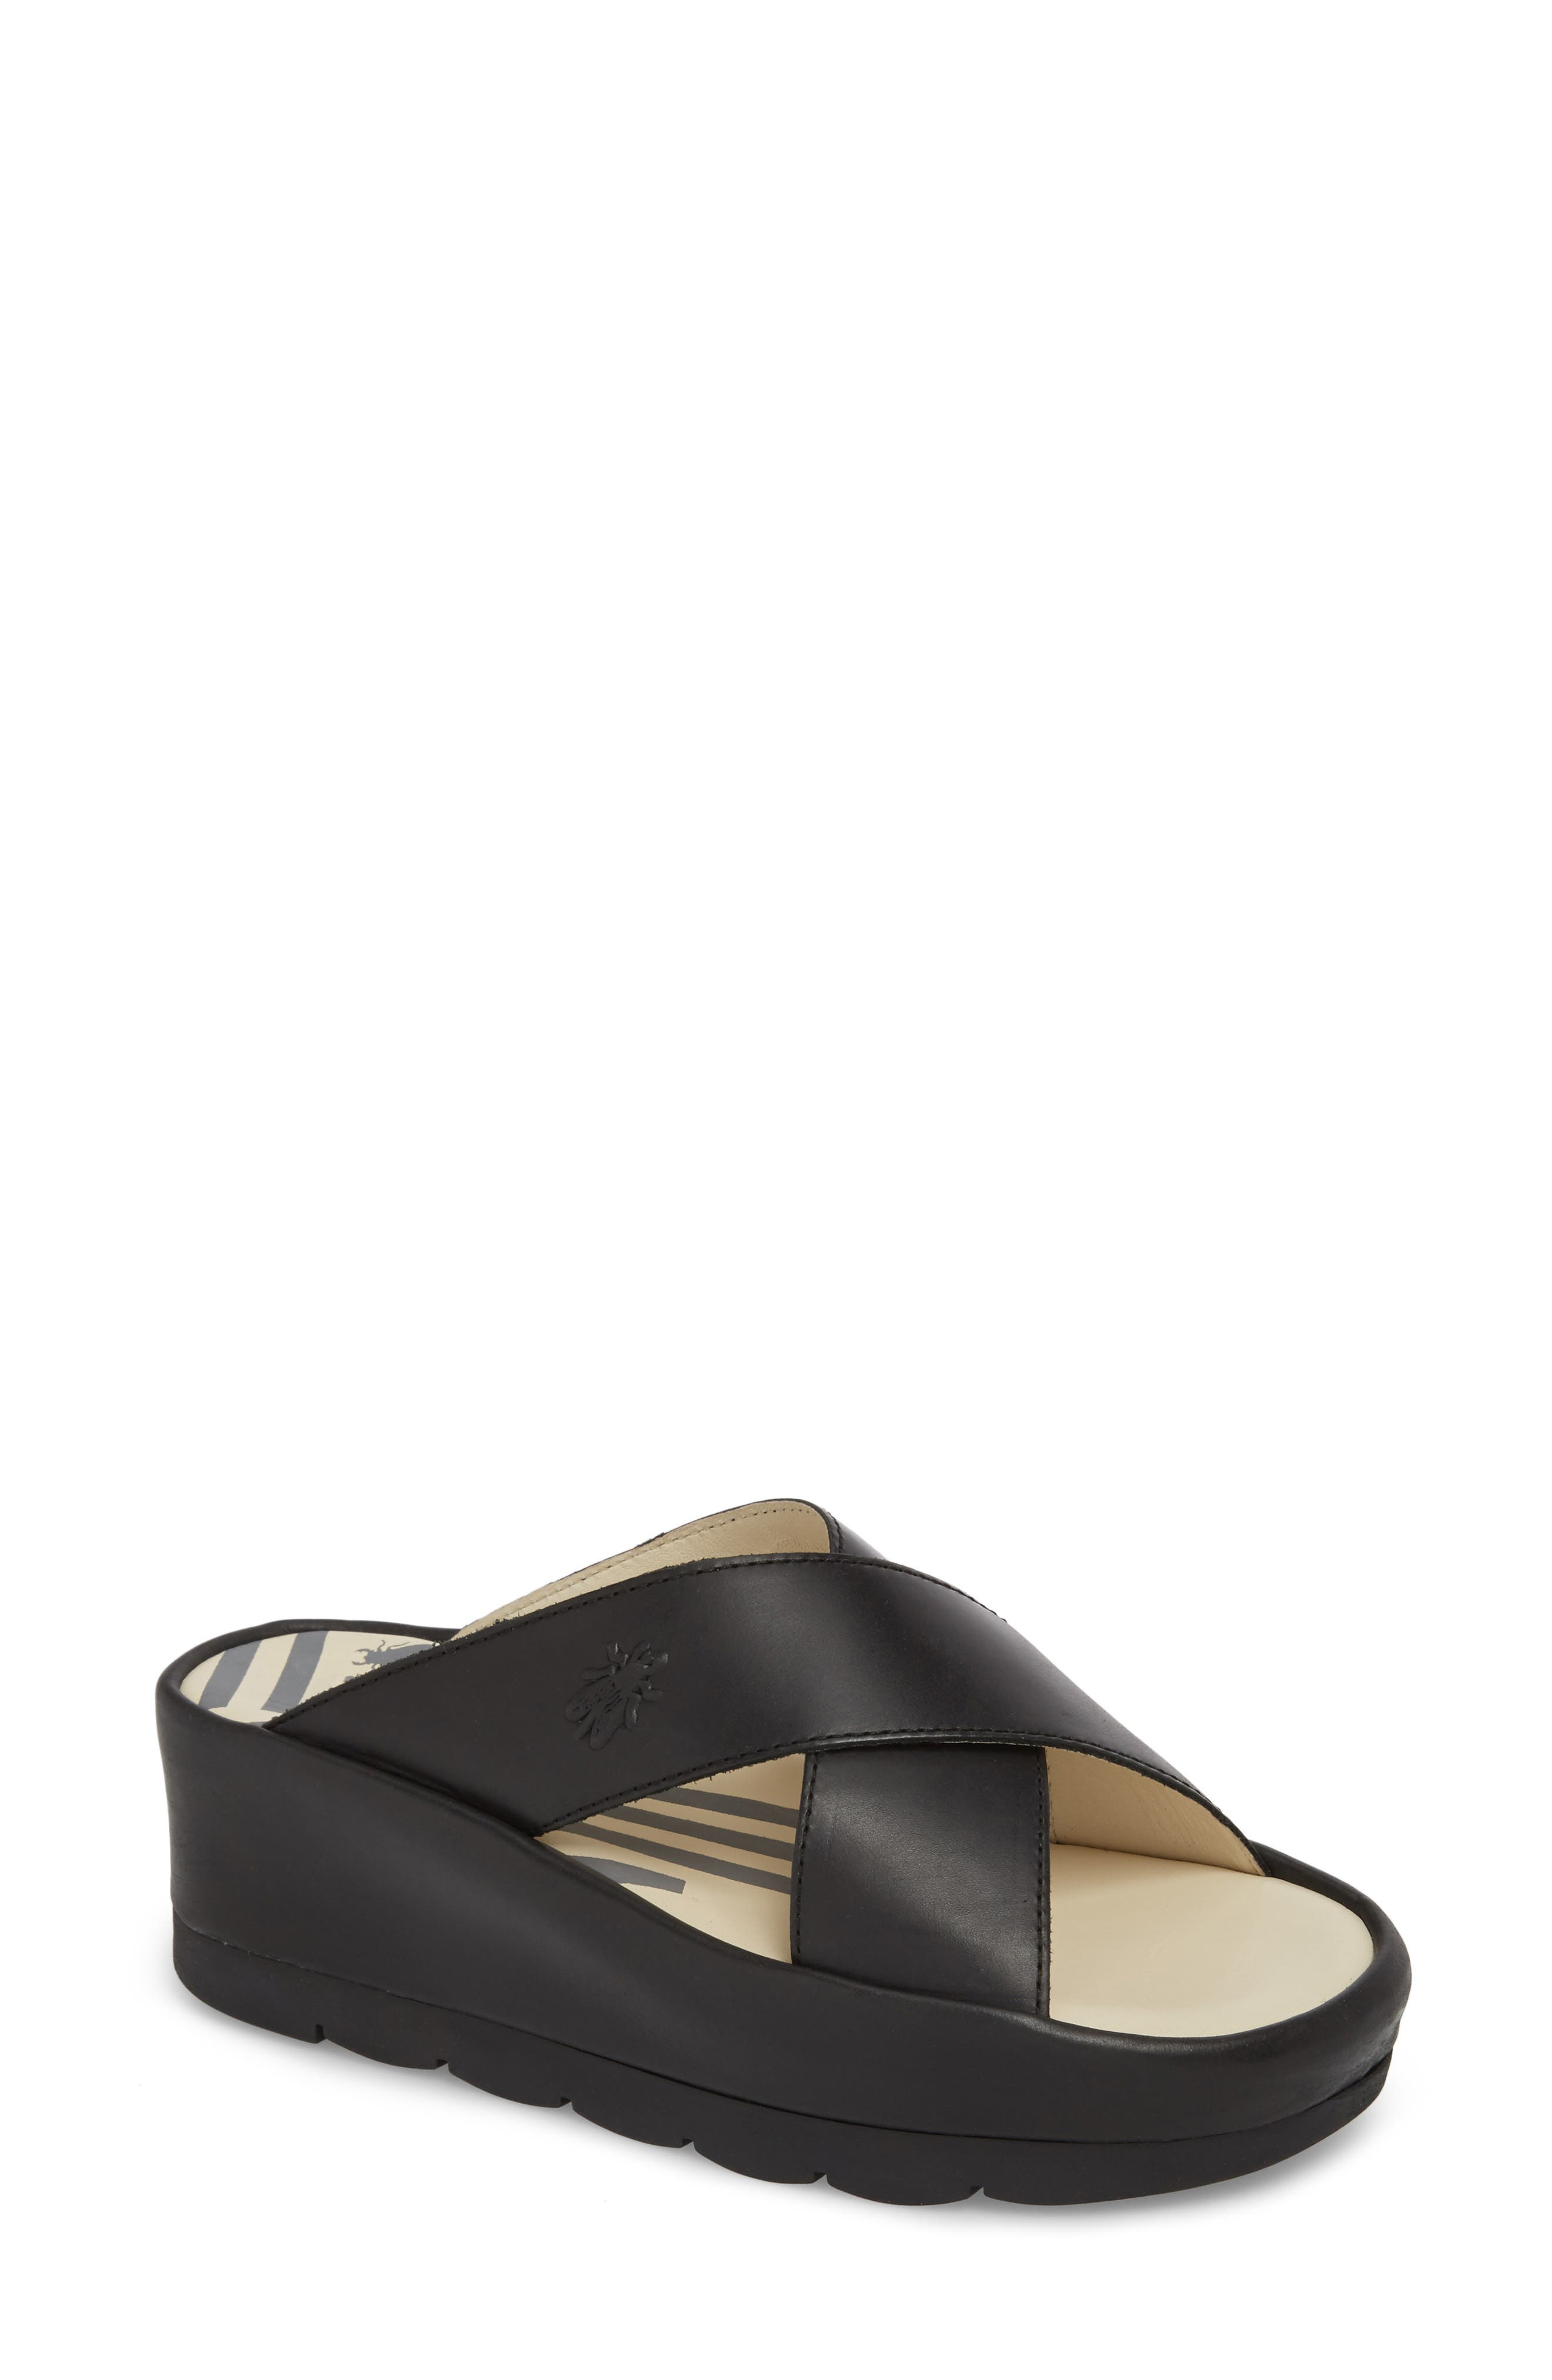 Begs Platform Slide Sandal,                             Main thumbnail 1, color,                             BLACK RUG LEATHER